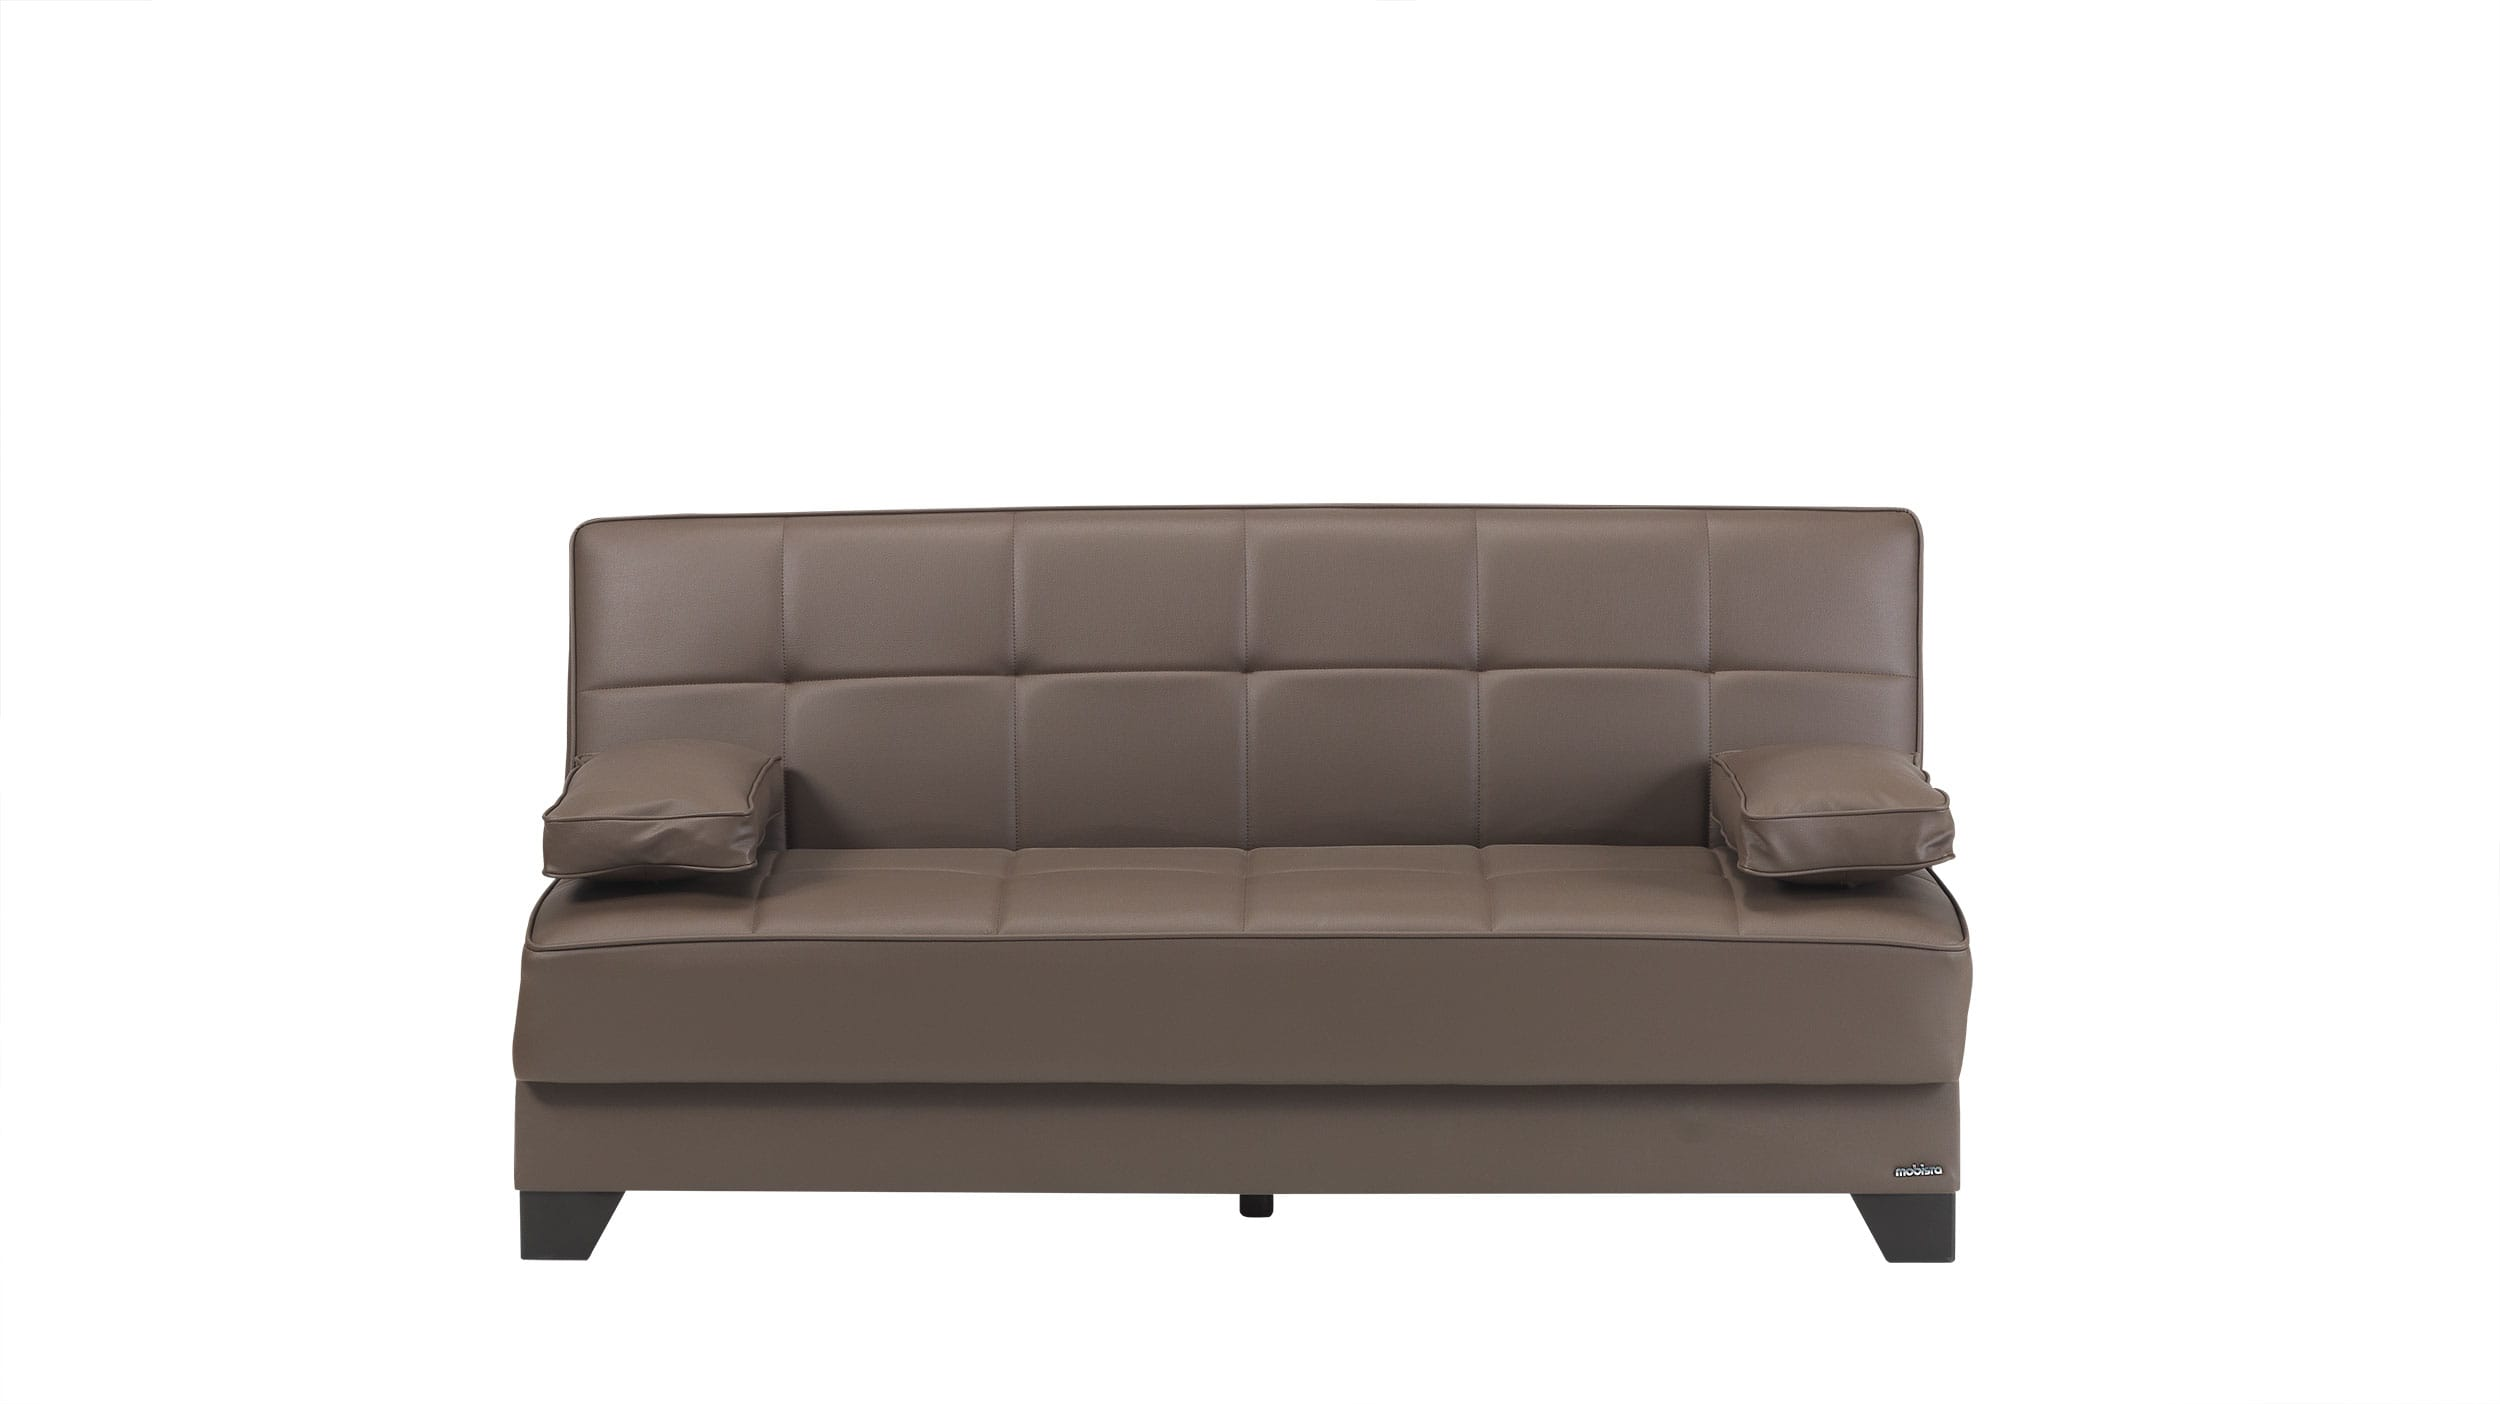 Tribeca nyc prestige brown sofa bed by mobista for Sofa bed nyc